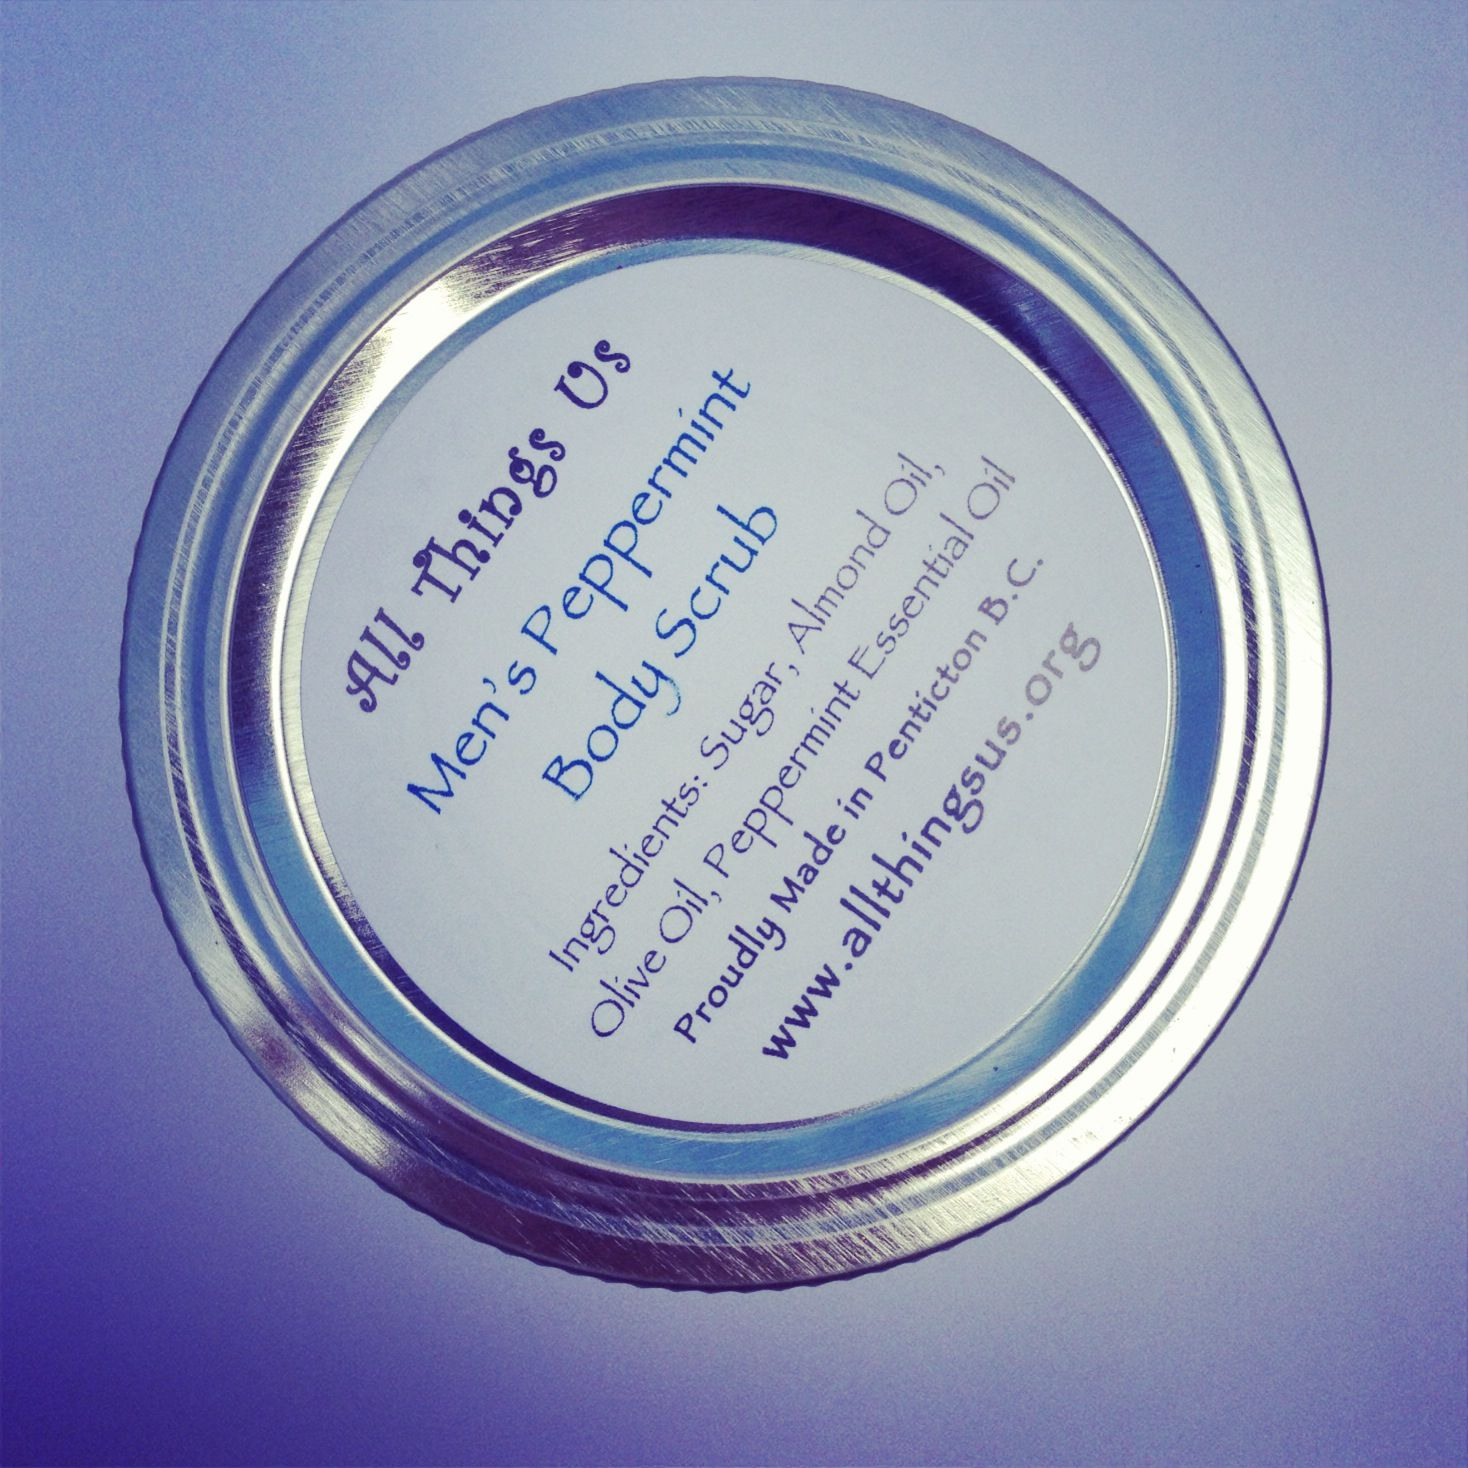 For The Guys! Organic Peppermint Body Scrub, $4.99